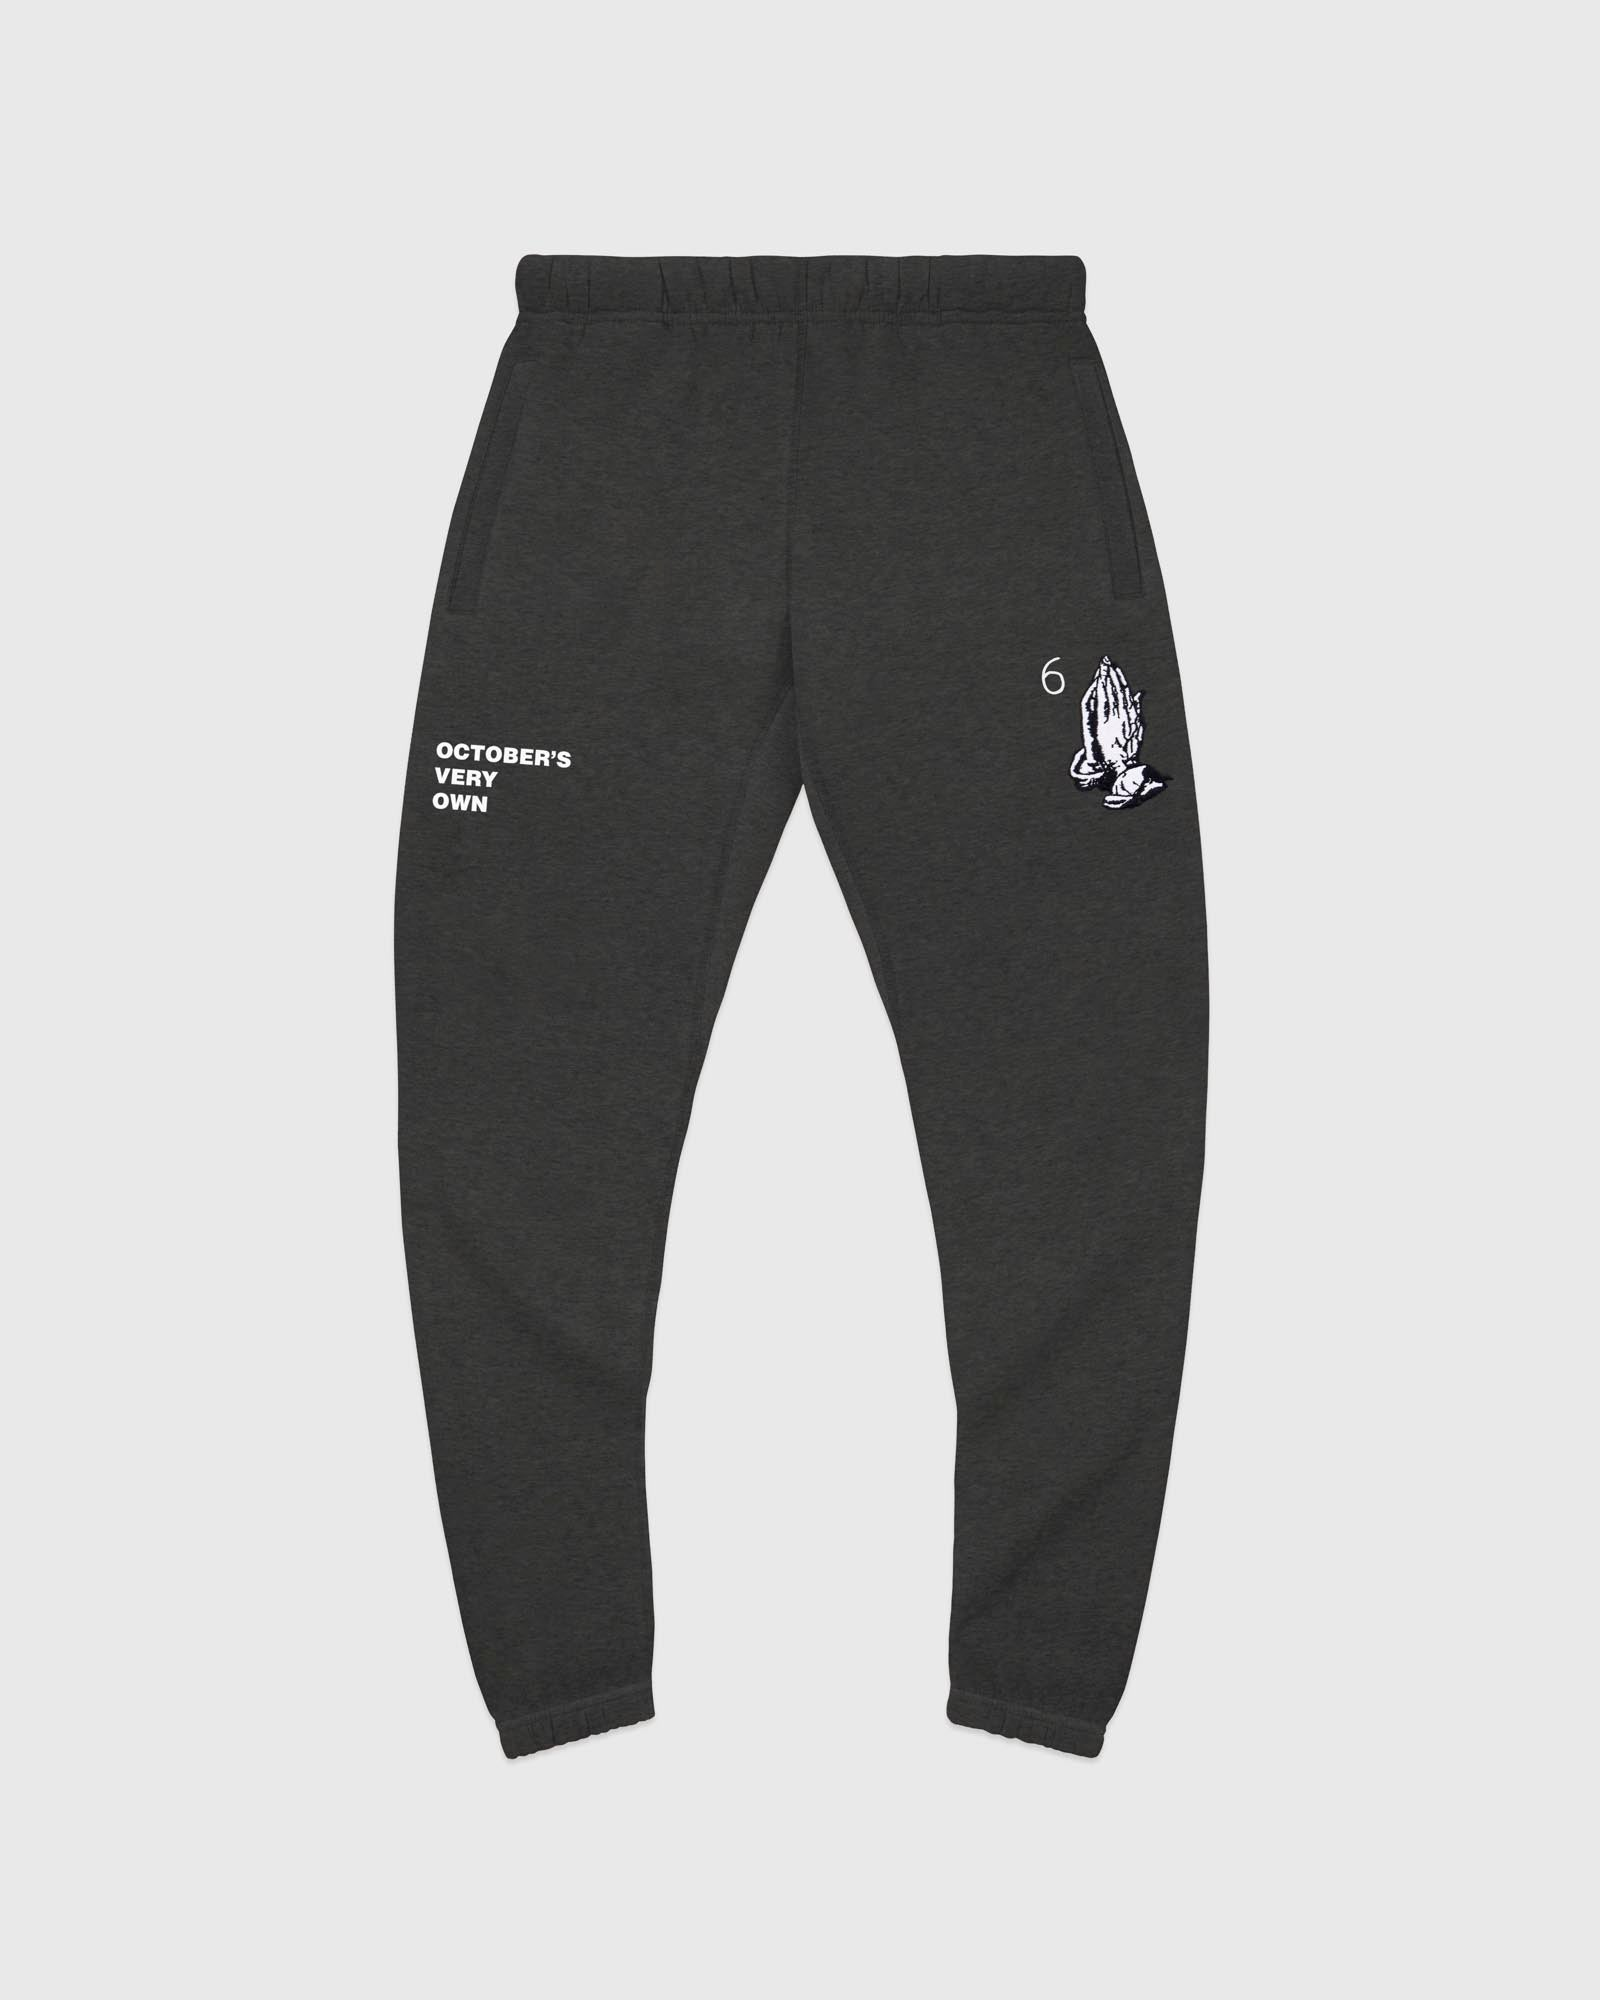 6 GOD SWEATPANT - CHARCOAL HEATHER IMAGE #1